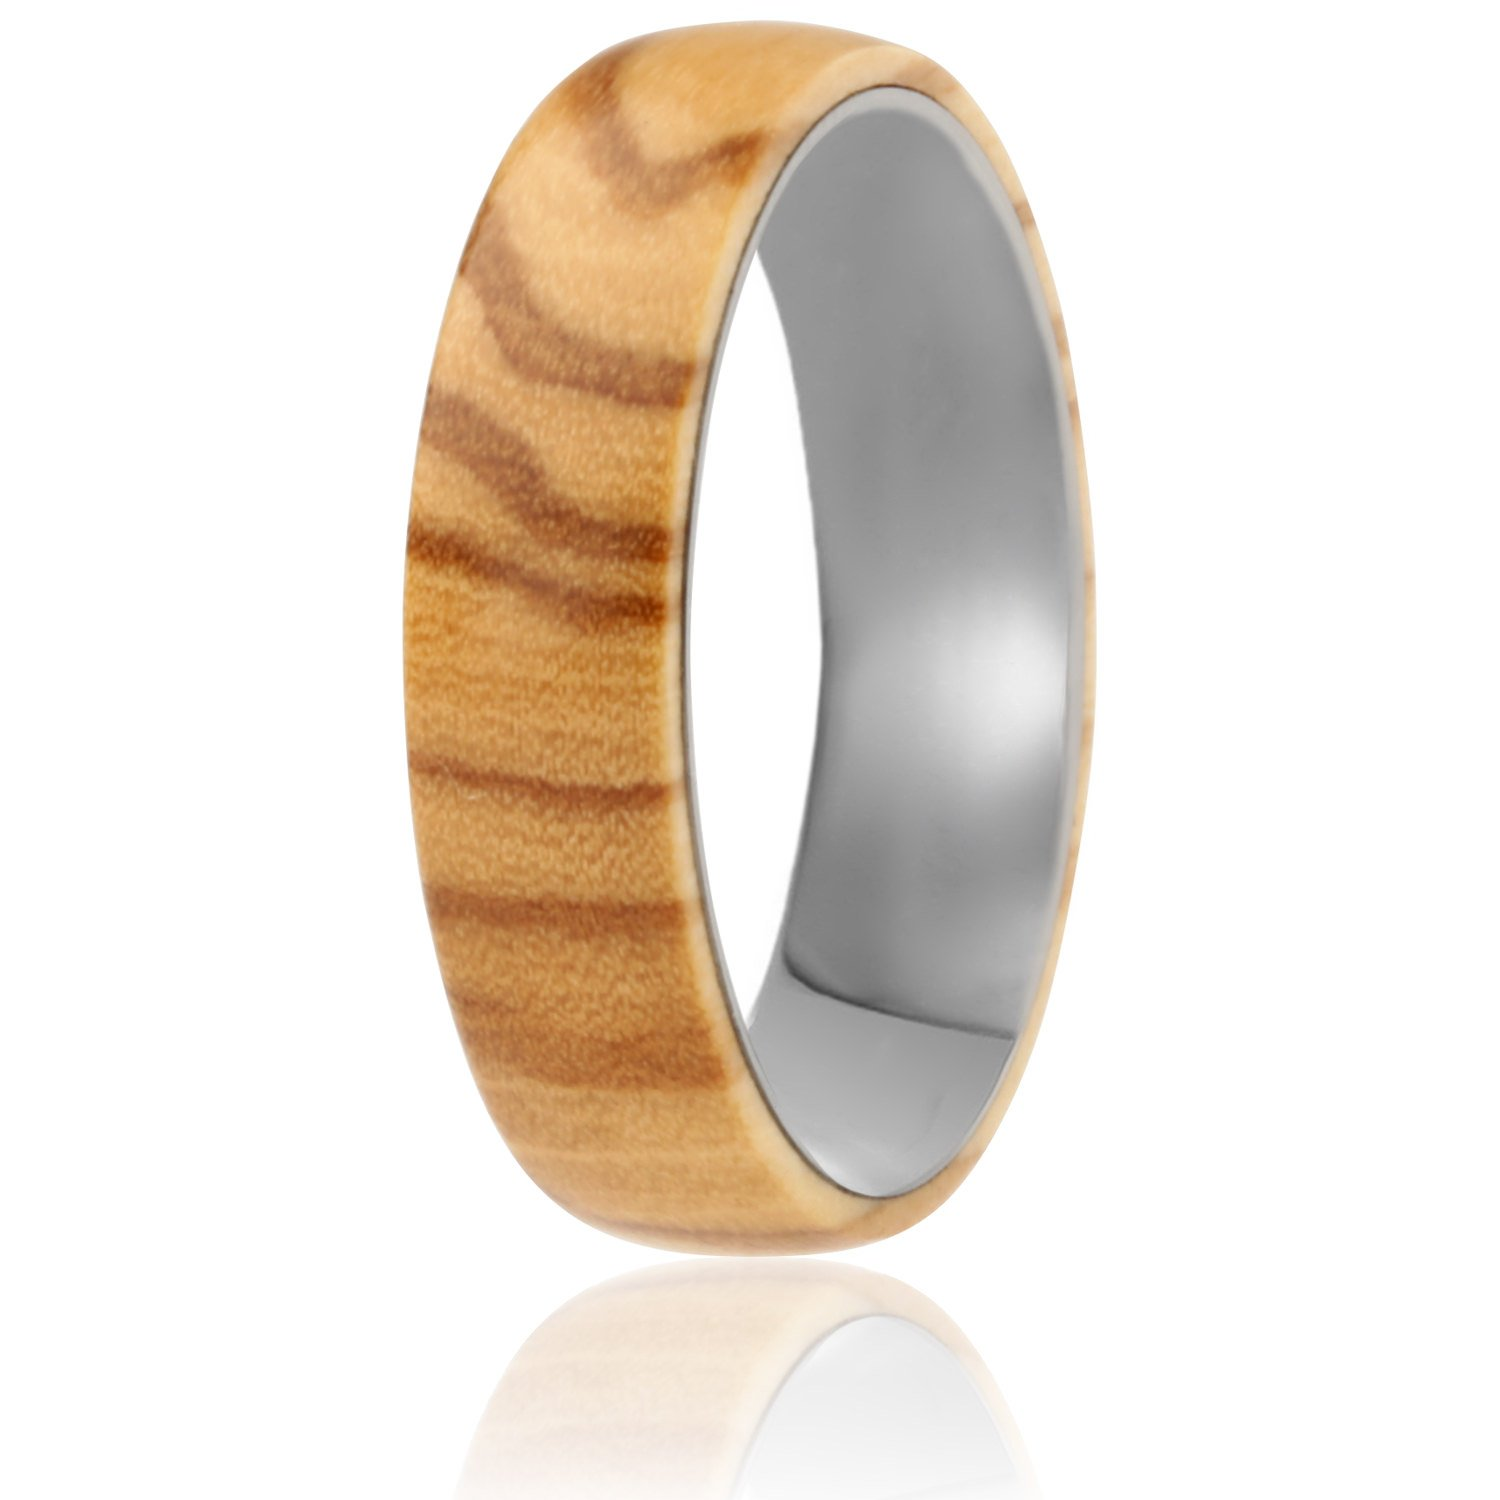 SOLEED Rings Wooden Wedding Band with Inner Tungsten Layer For Strength and Protection - Designed For Men and Women, 6mm Natural Olive Wood Ring, Comfort Fit Design, Domed Top - Size 8